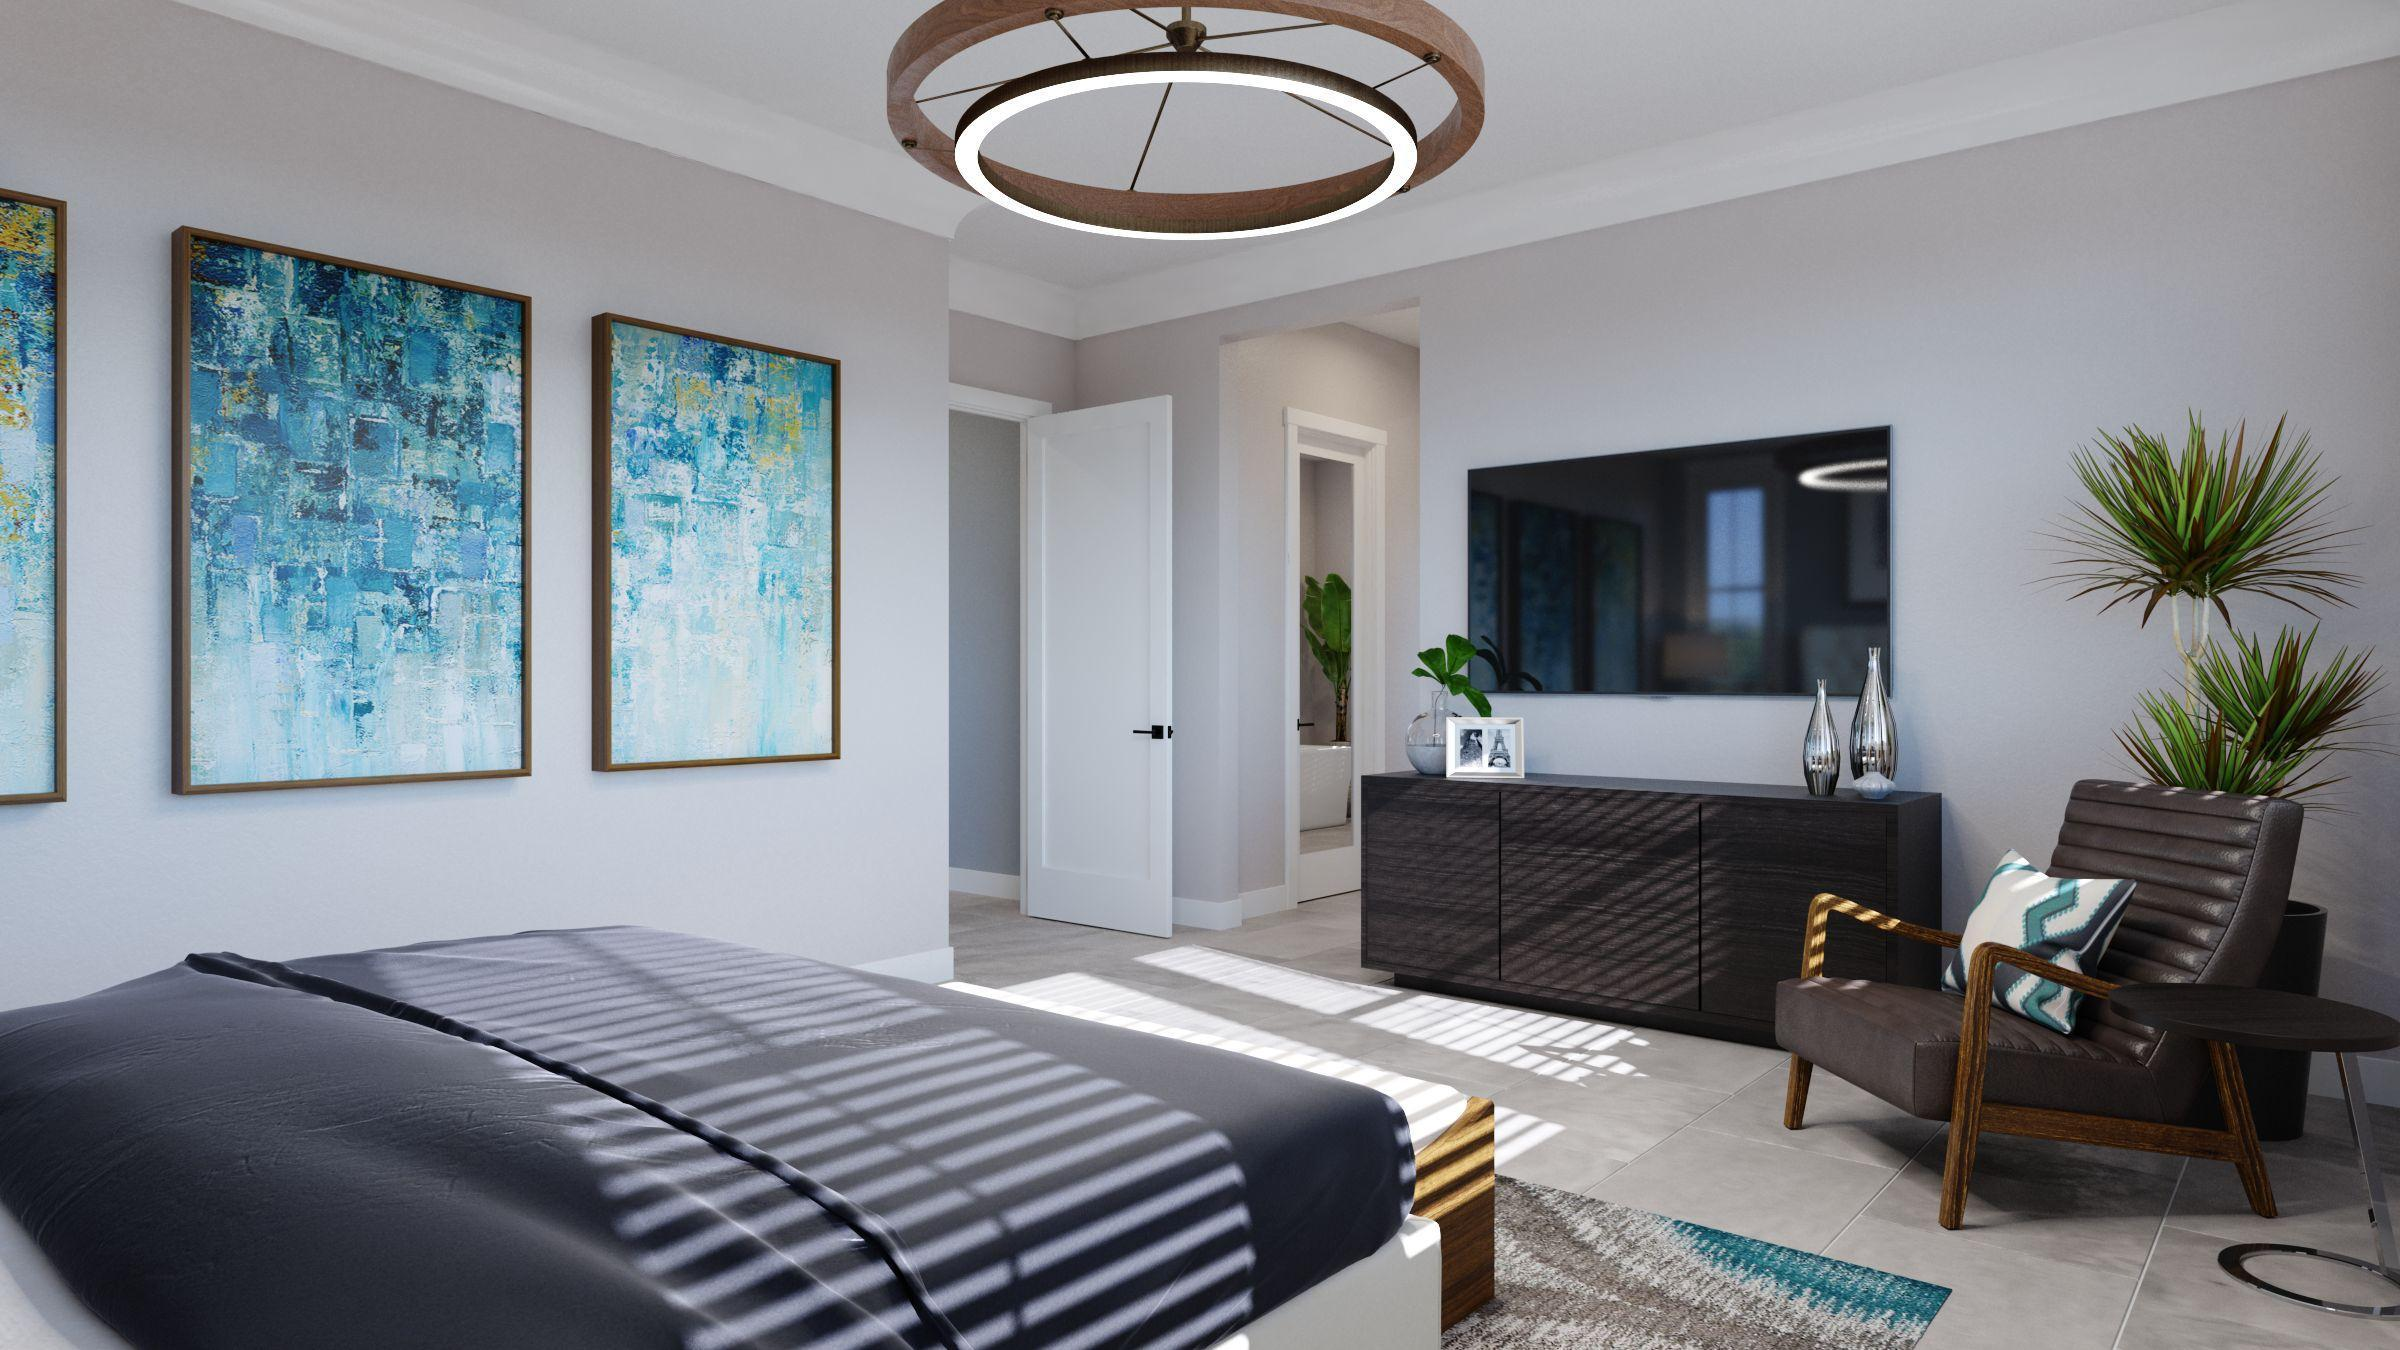 Bedroom featured in the Residence 1 -Harmony By Trumark Homes in San Jose, CA